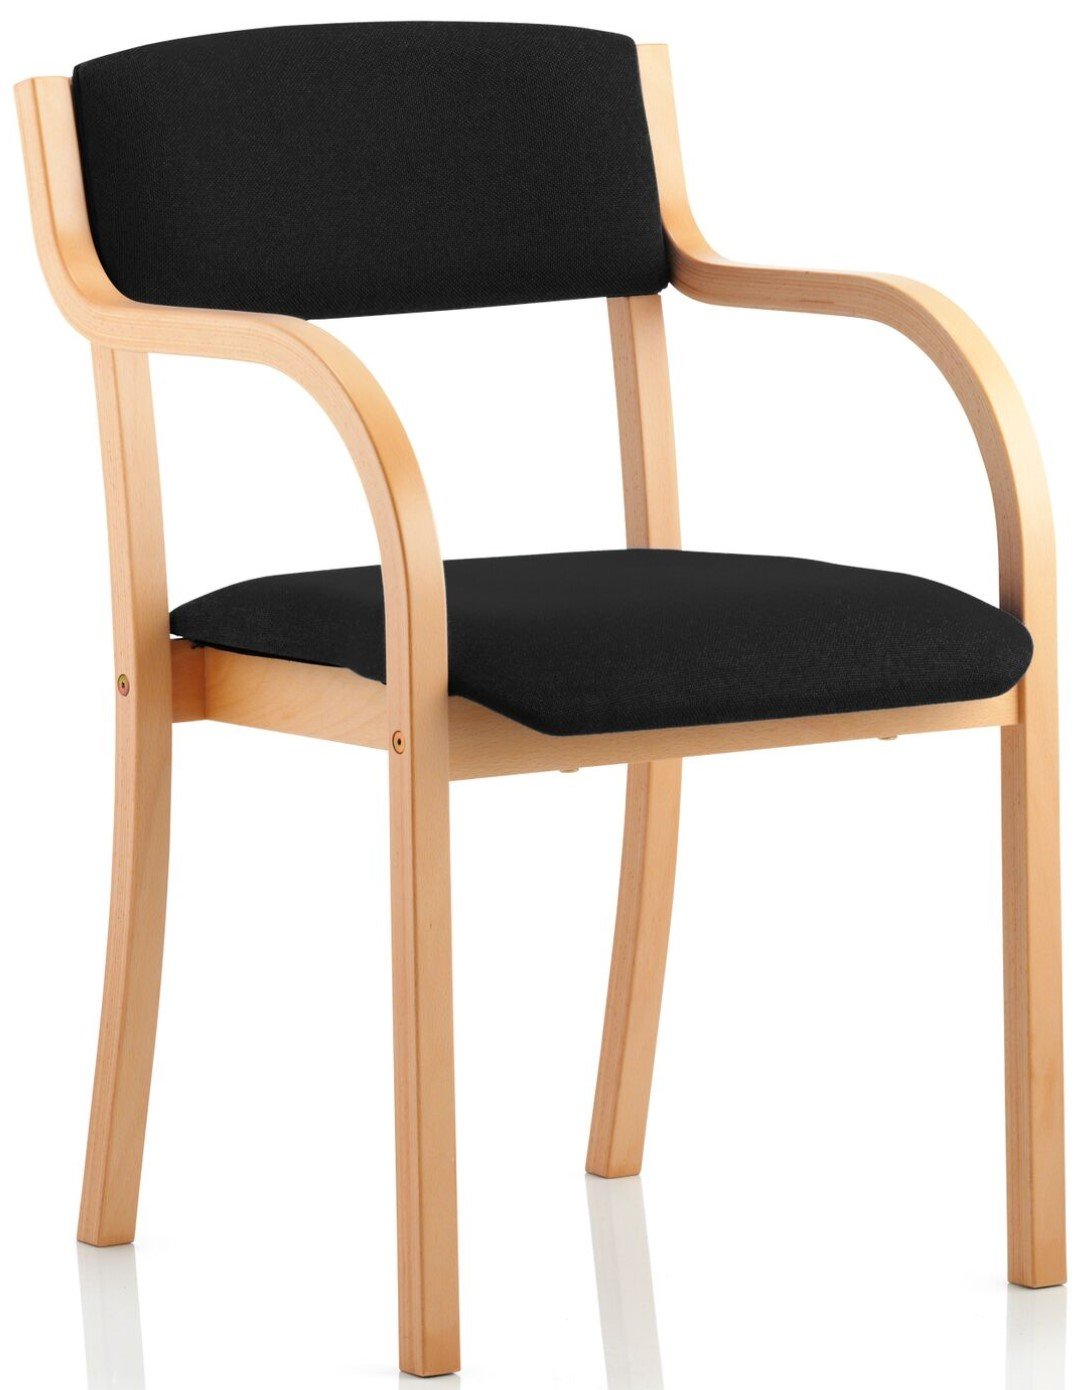 wooden chair frames for upholstery uk 0 gravity chairs madrid wood frame visitor